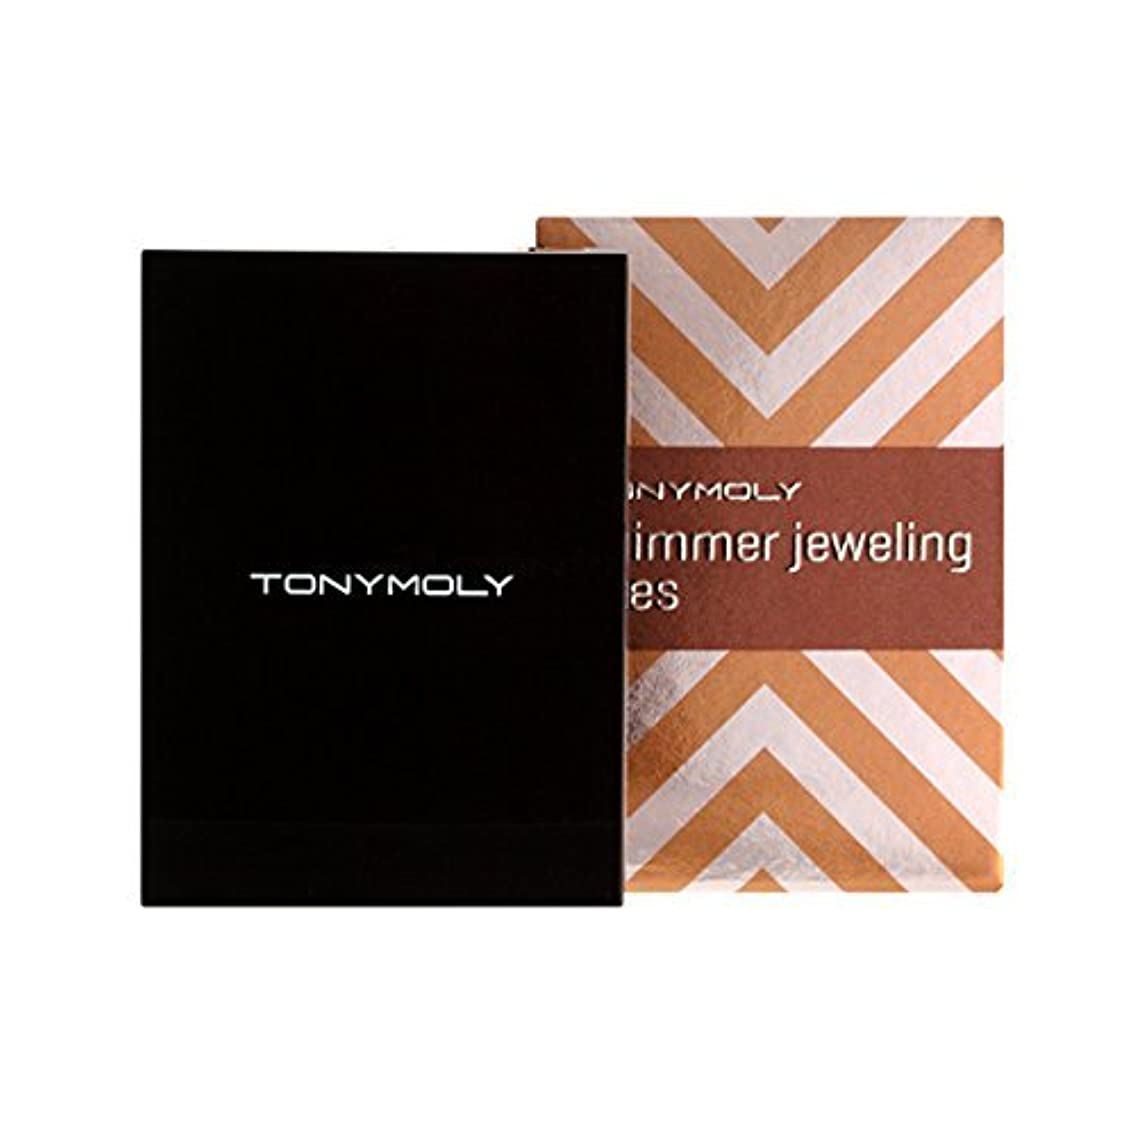 発明イーウェルブラザー[Tonymoly] トニーモリ Shimmer Jeweling Eyes 2.7g #01 Gold Jeweling by TONYMOLY